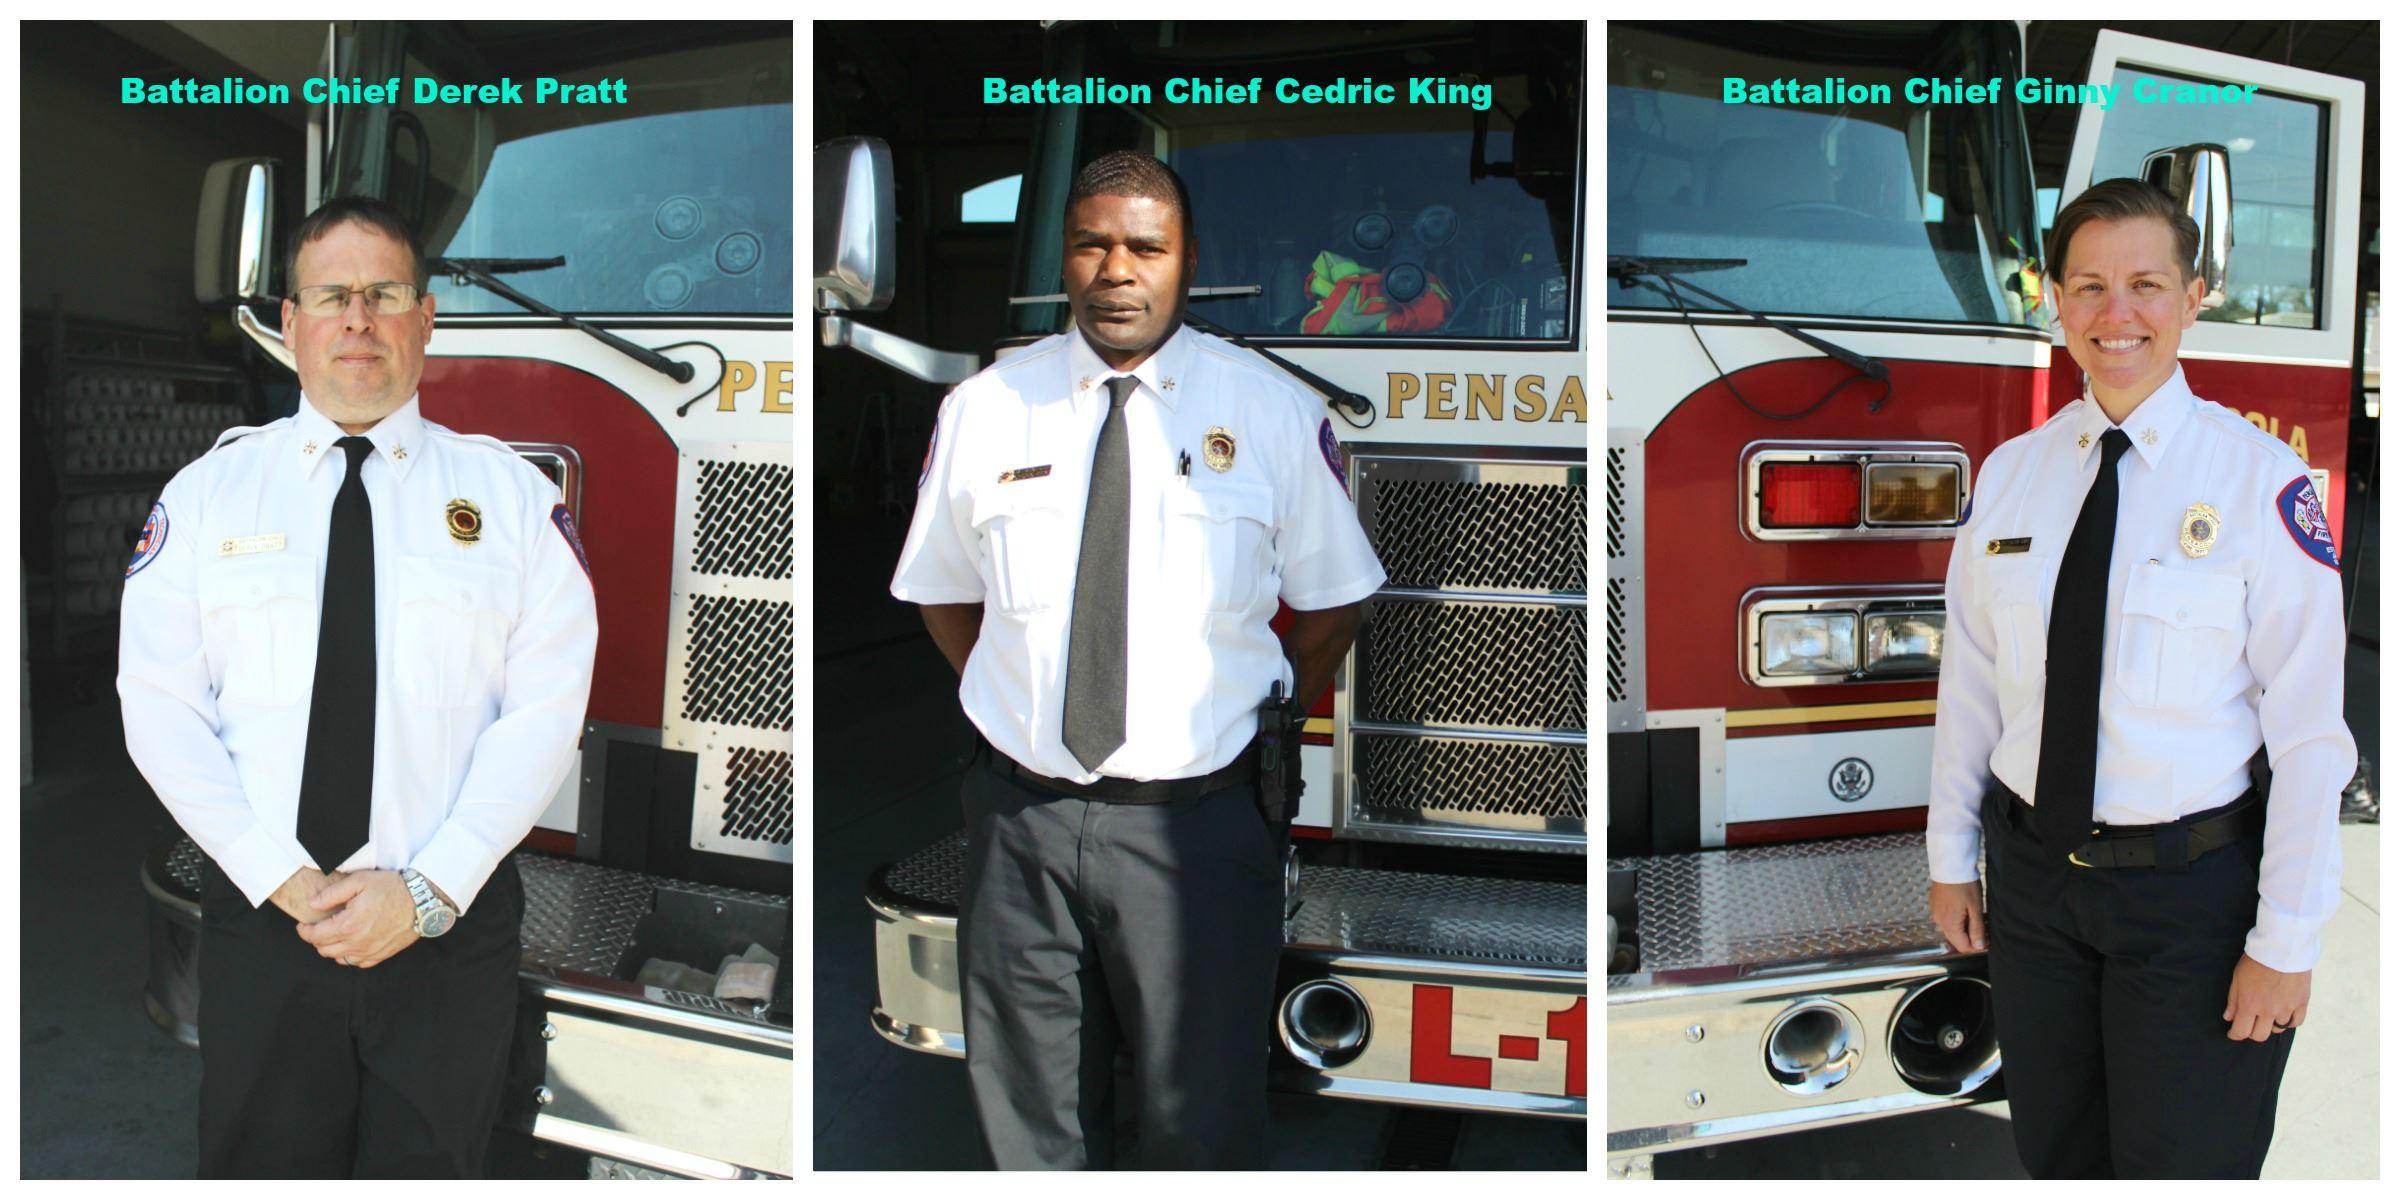 Battalion Chiefs 3